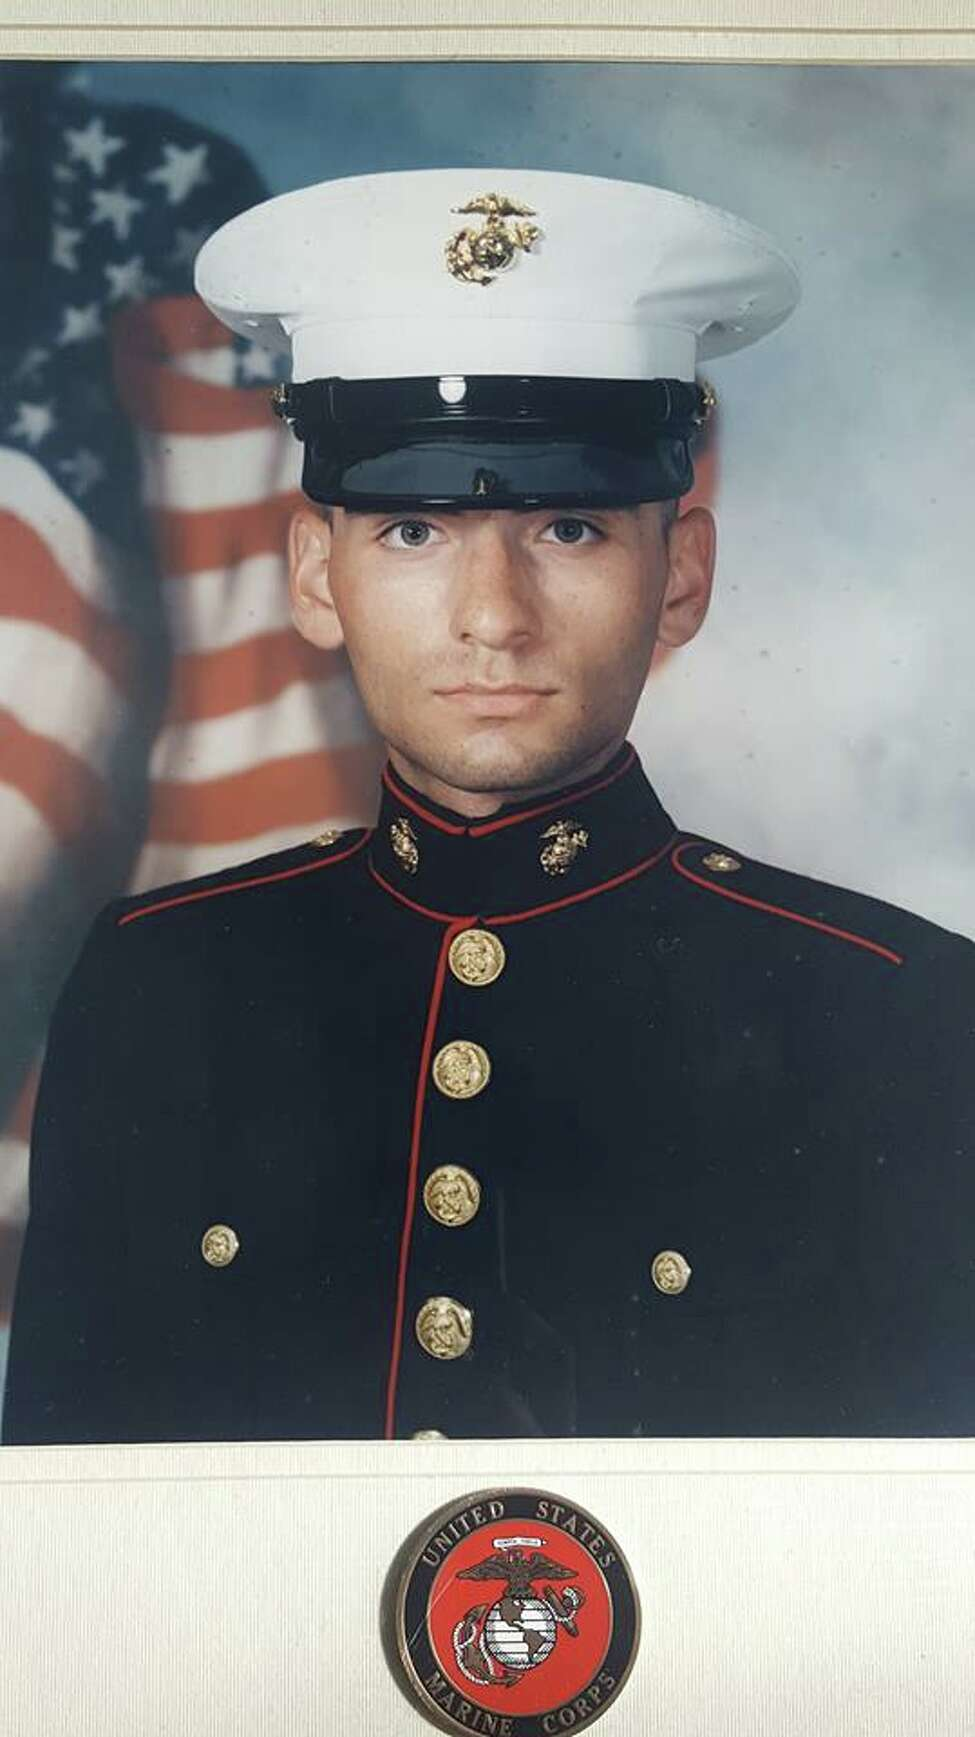 Michael Ukaj, a Marine Corps veteran, was killed on his 34th birthday in the limo crash in Schoharie on Oct. 6, 2018.